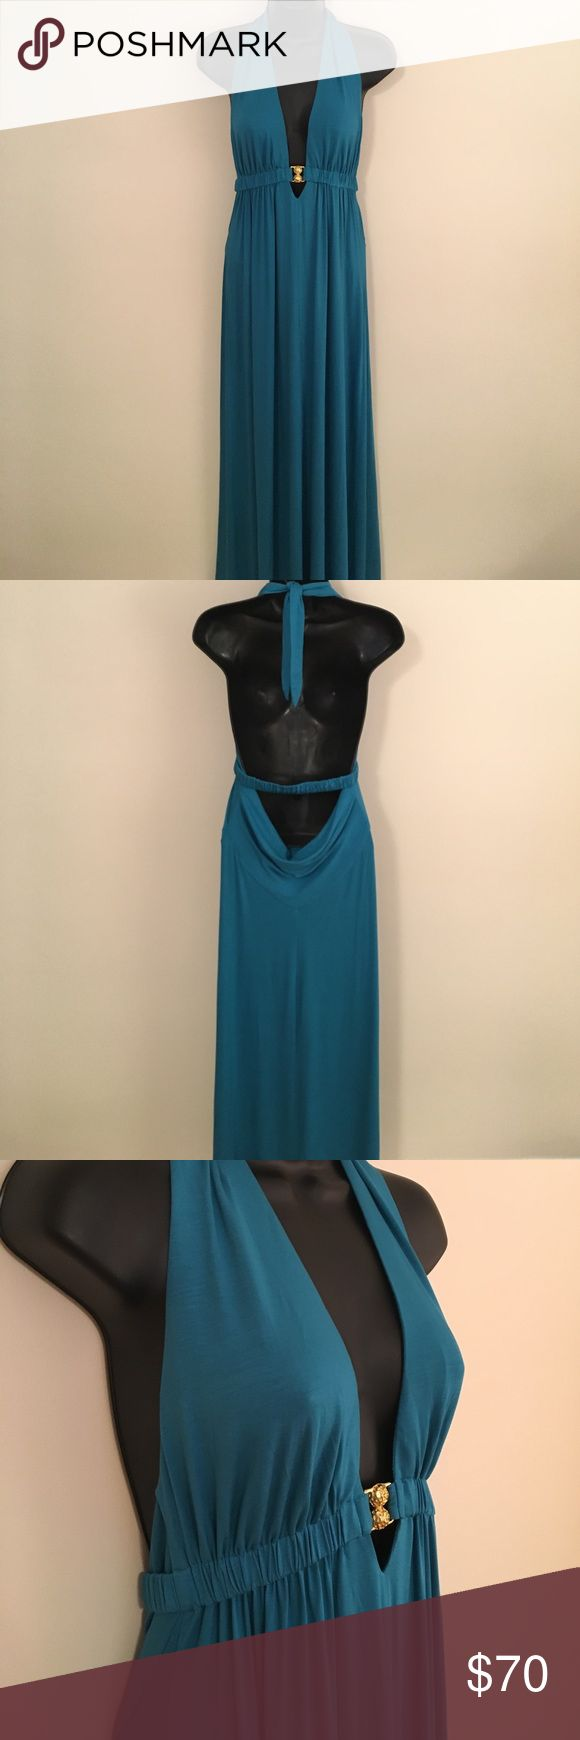 Trina Turk Plunge-Neck Halter Maxi Dress NWT Stunning Trina Turk Teal Maxi Dress with Plunge Halter Neck. 90% Viscose, 10% Elastane. I bought this dress for a wedding and never had the chance to wear it. New with Tags! Price is Negotiable! Trina Turk Dresses Maxi